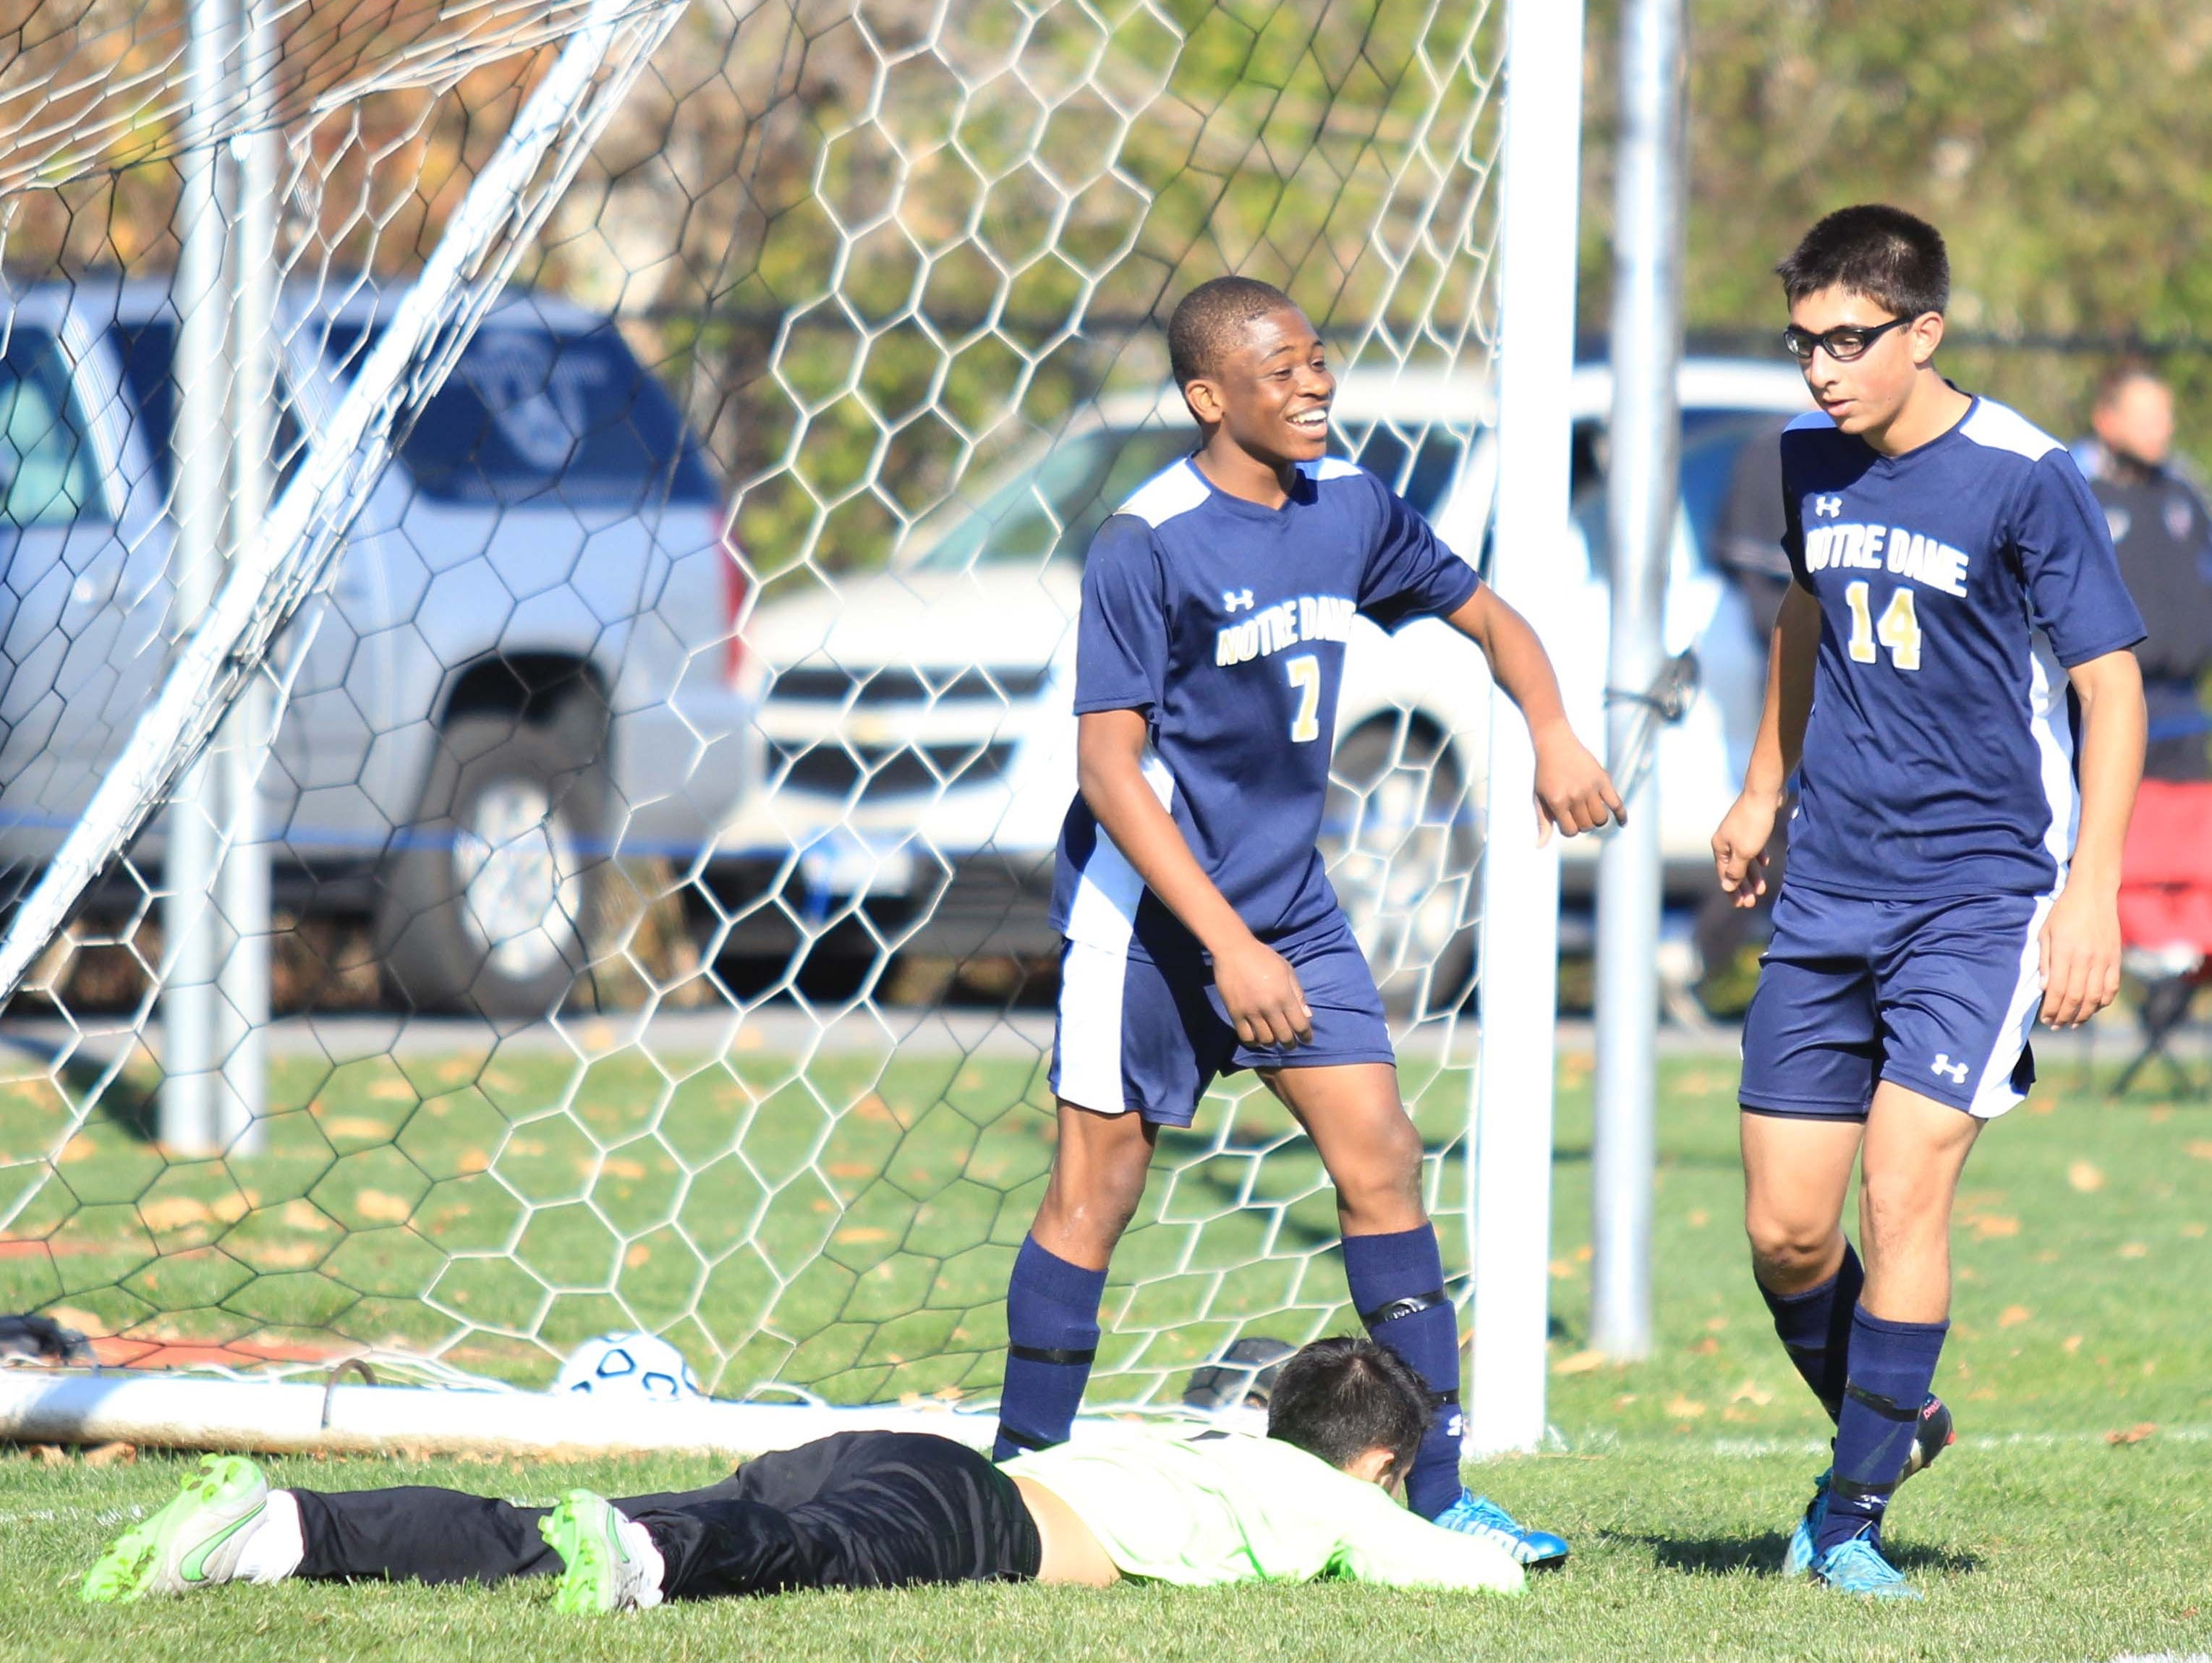 Notre Dame's Rocco Coulibaly (left) and Aidan Sharma (right) celebrate after a goal in the NYSPHSAA Class C final in Middletown.